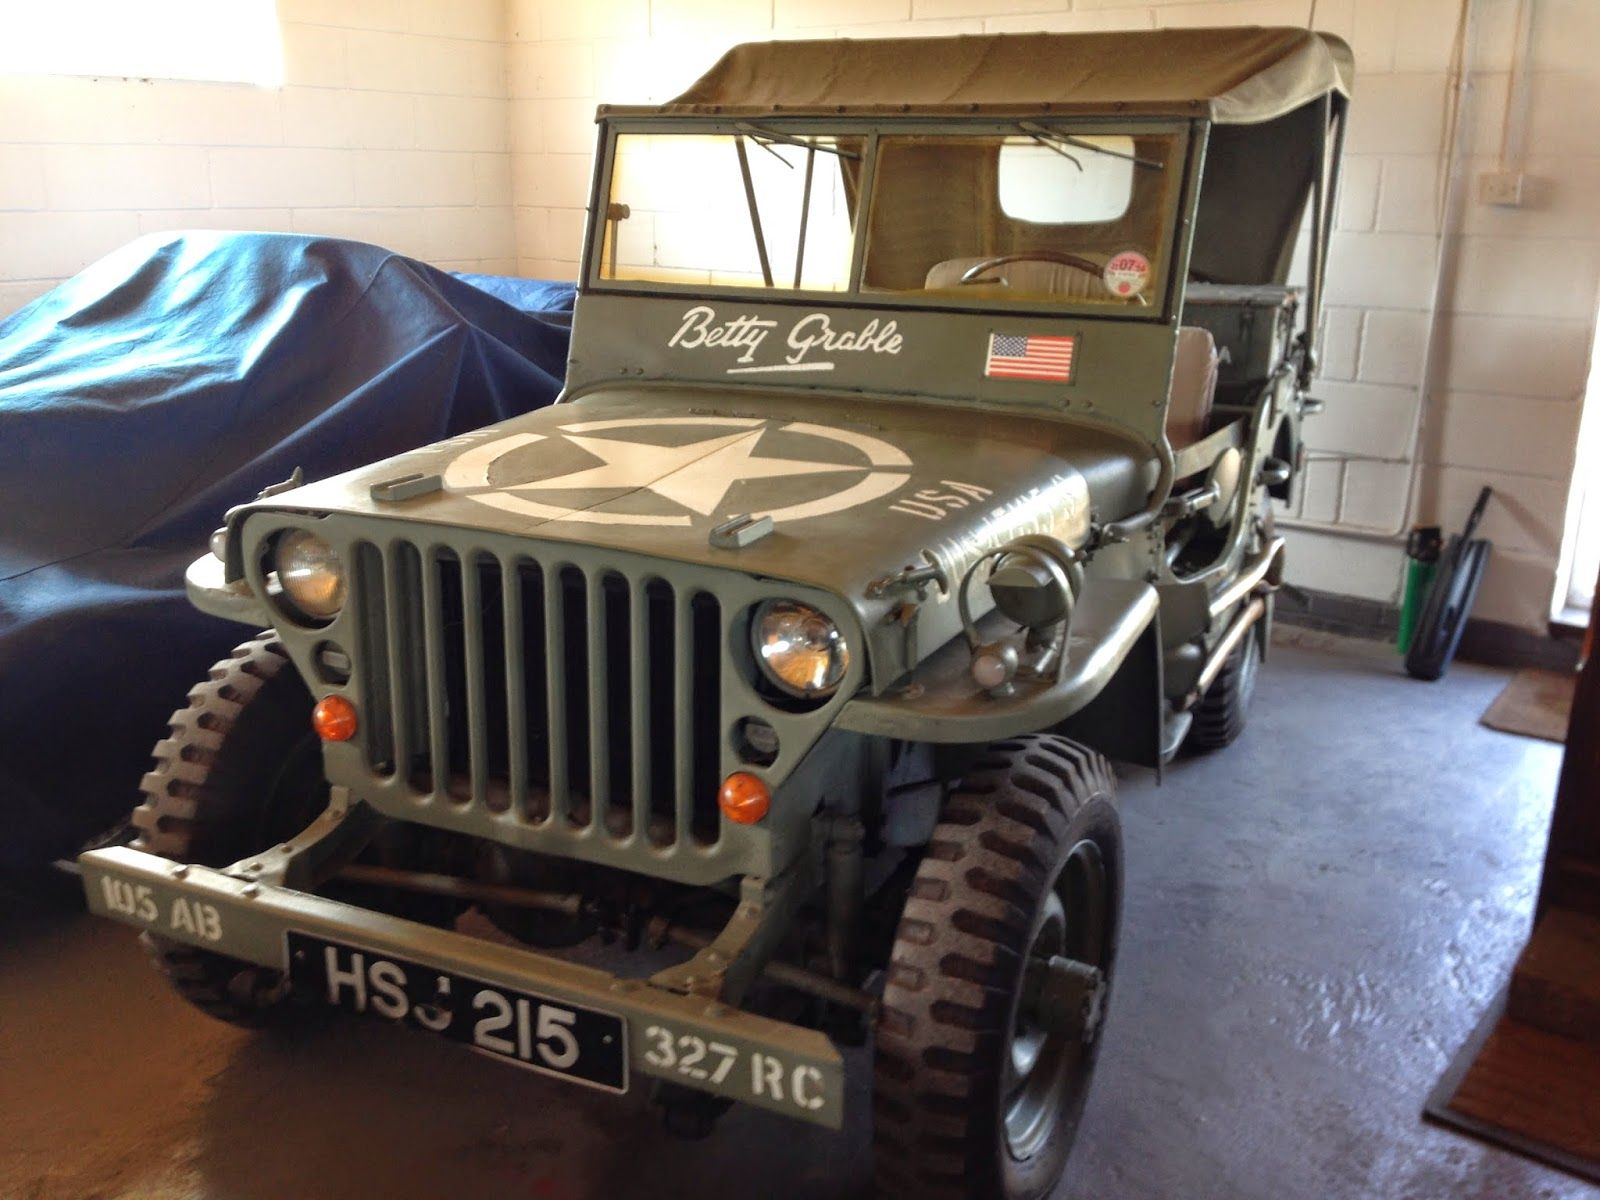 A vintage Jeep parked in the barn at Ramley Farm